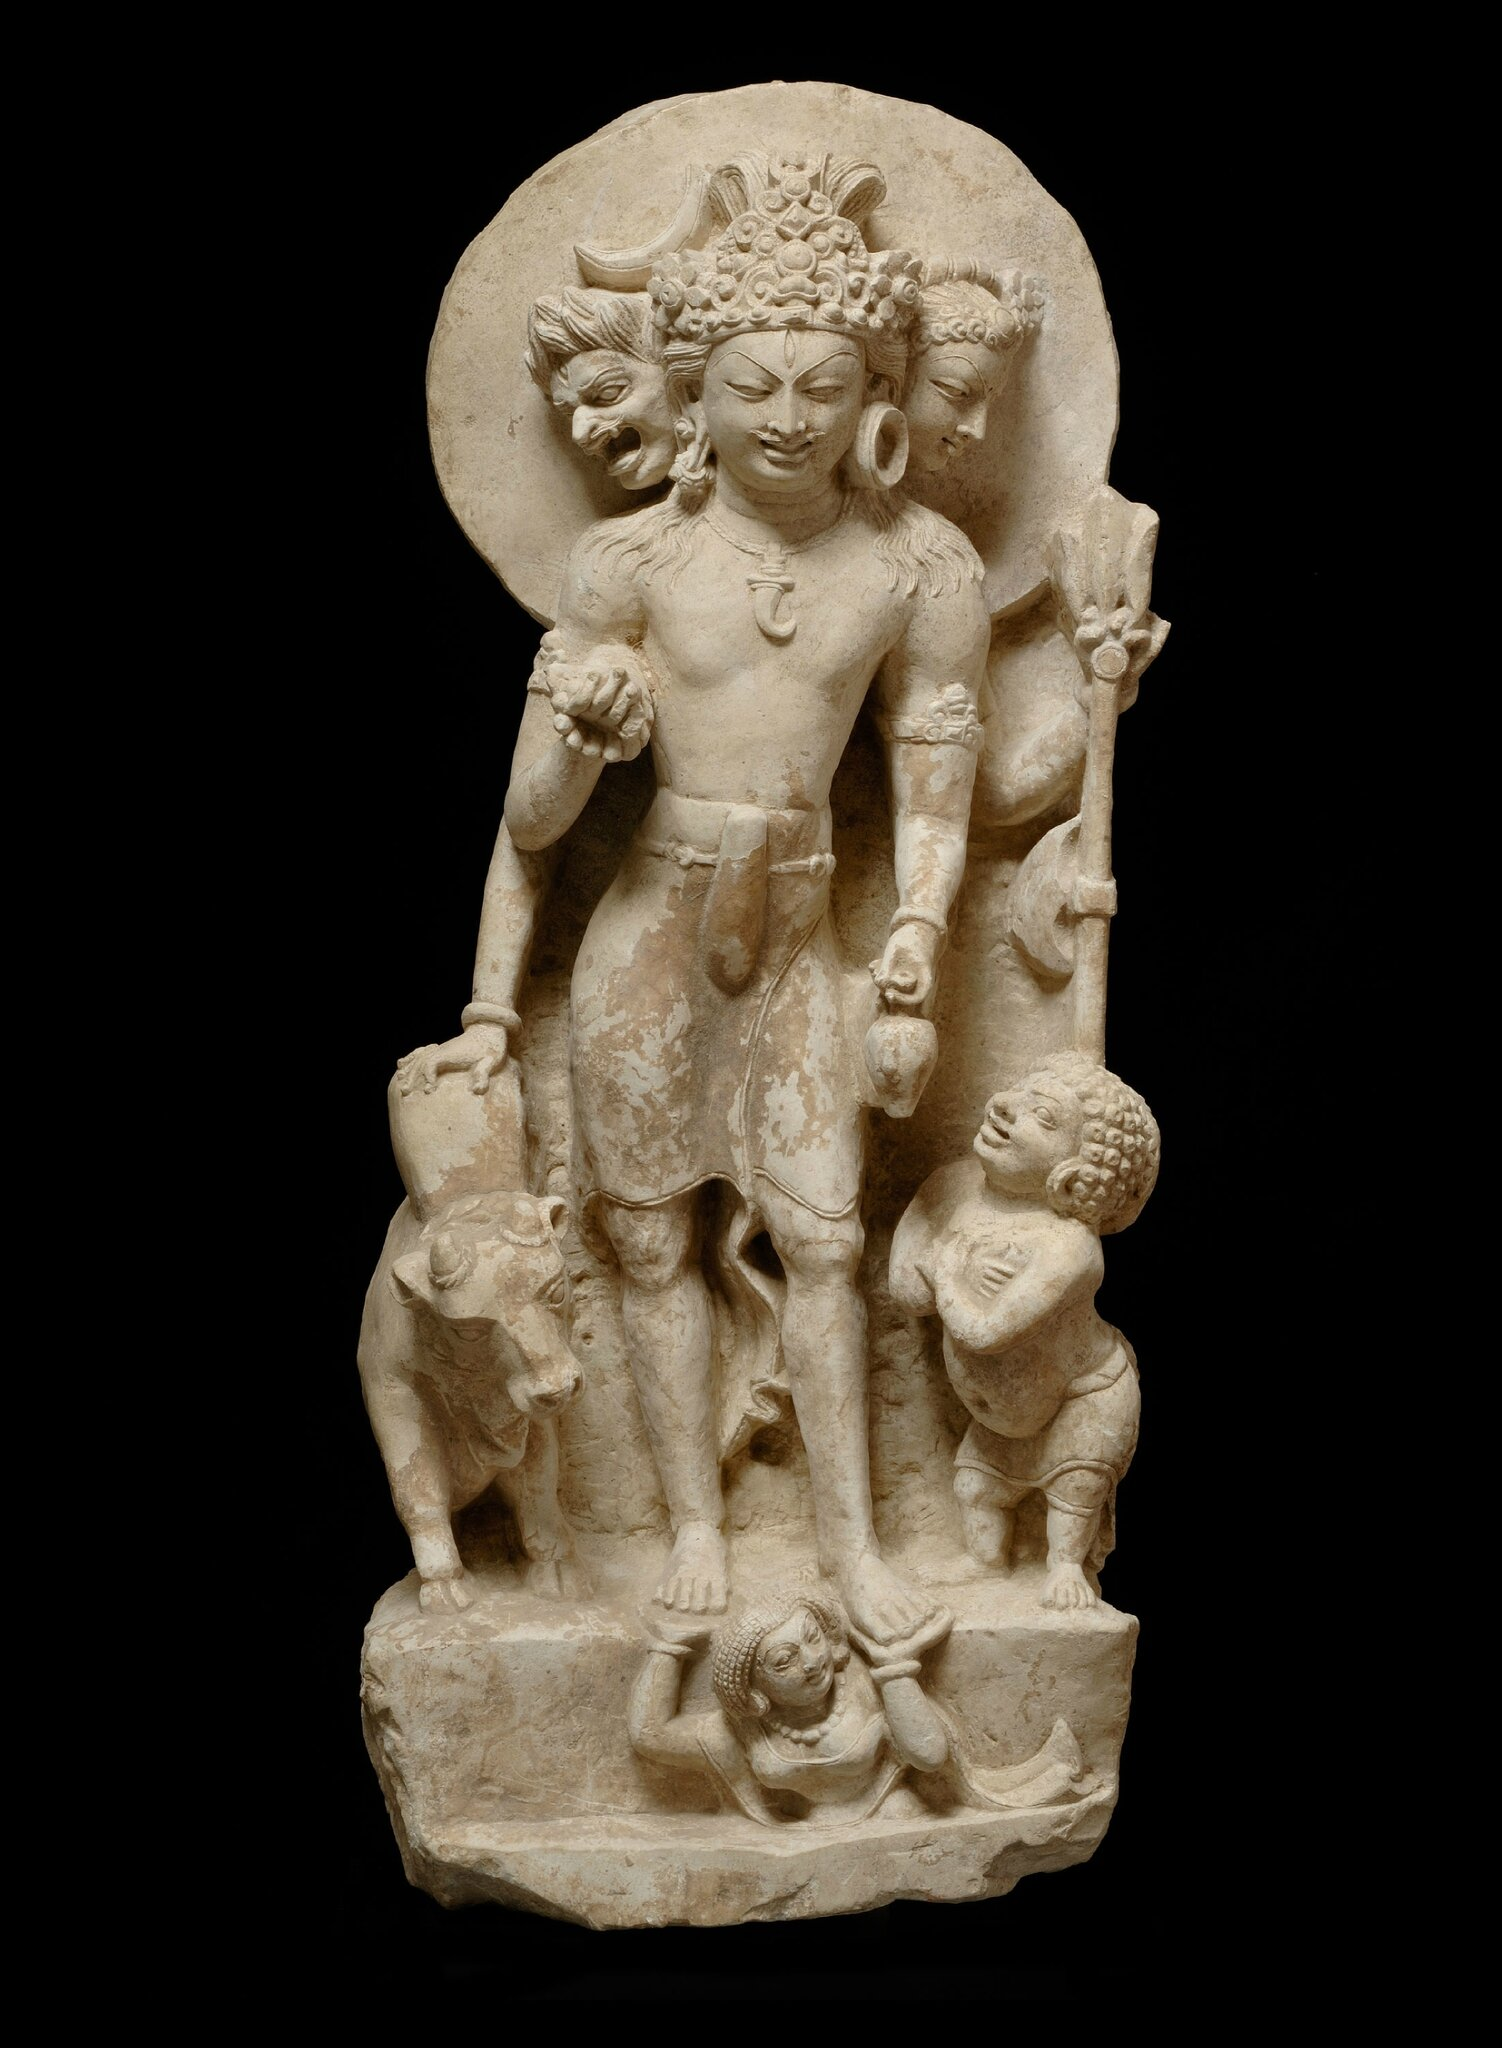 Three_headed_Shiva_with_Nandi_Prithvi_and_a_gana-North-west_India-Punjab-Salt_Hills-7th_8th_C-limestone-ht_58cmJohn_Eskenazi